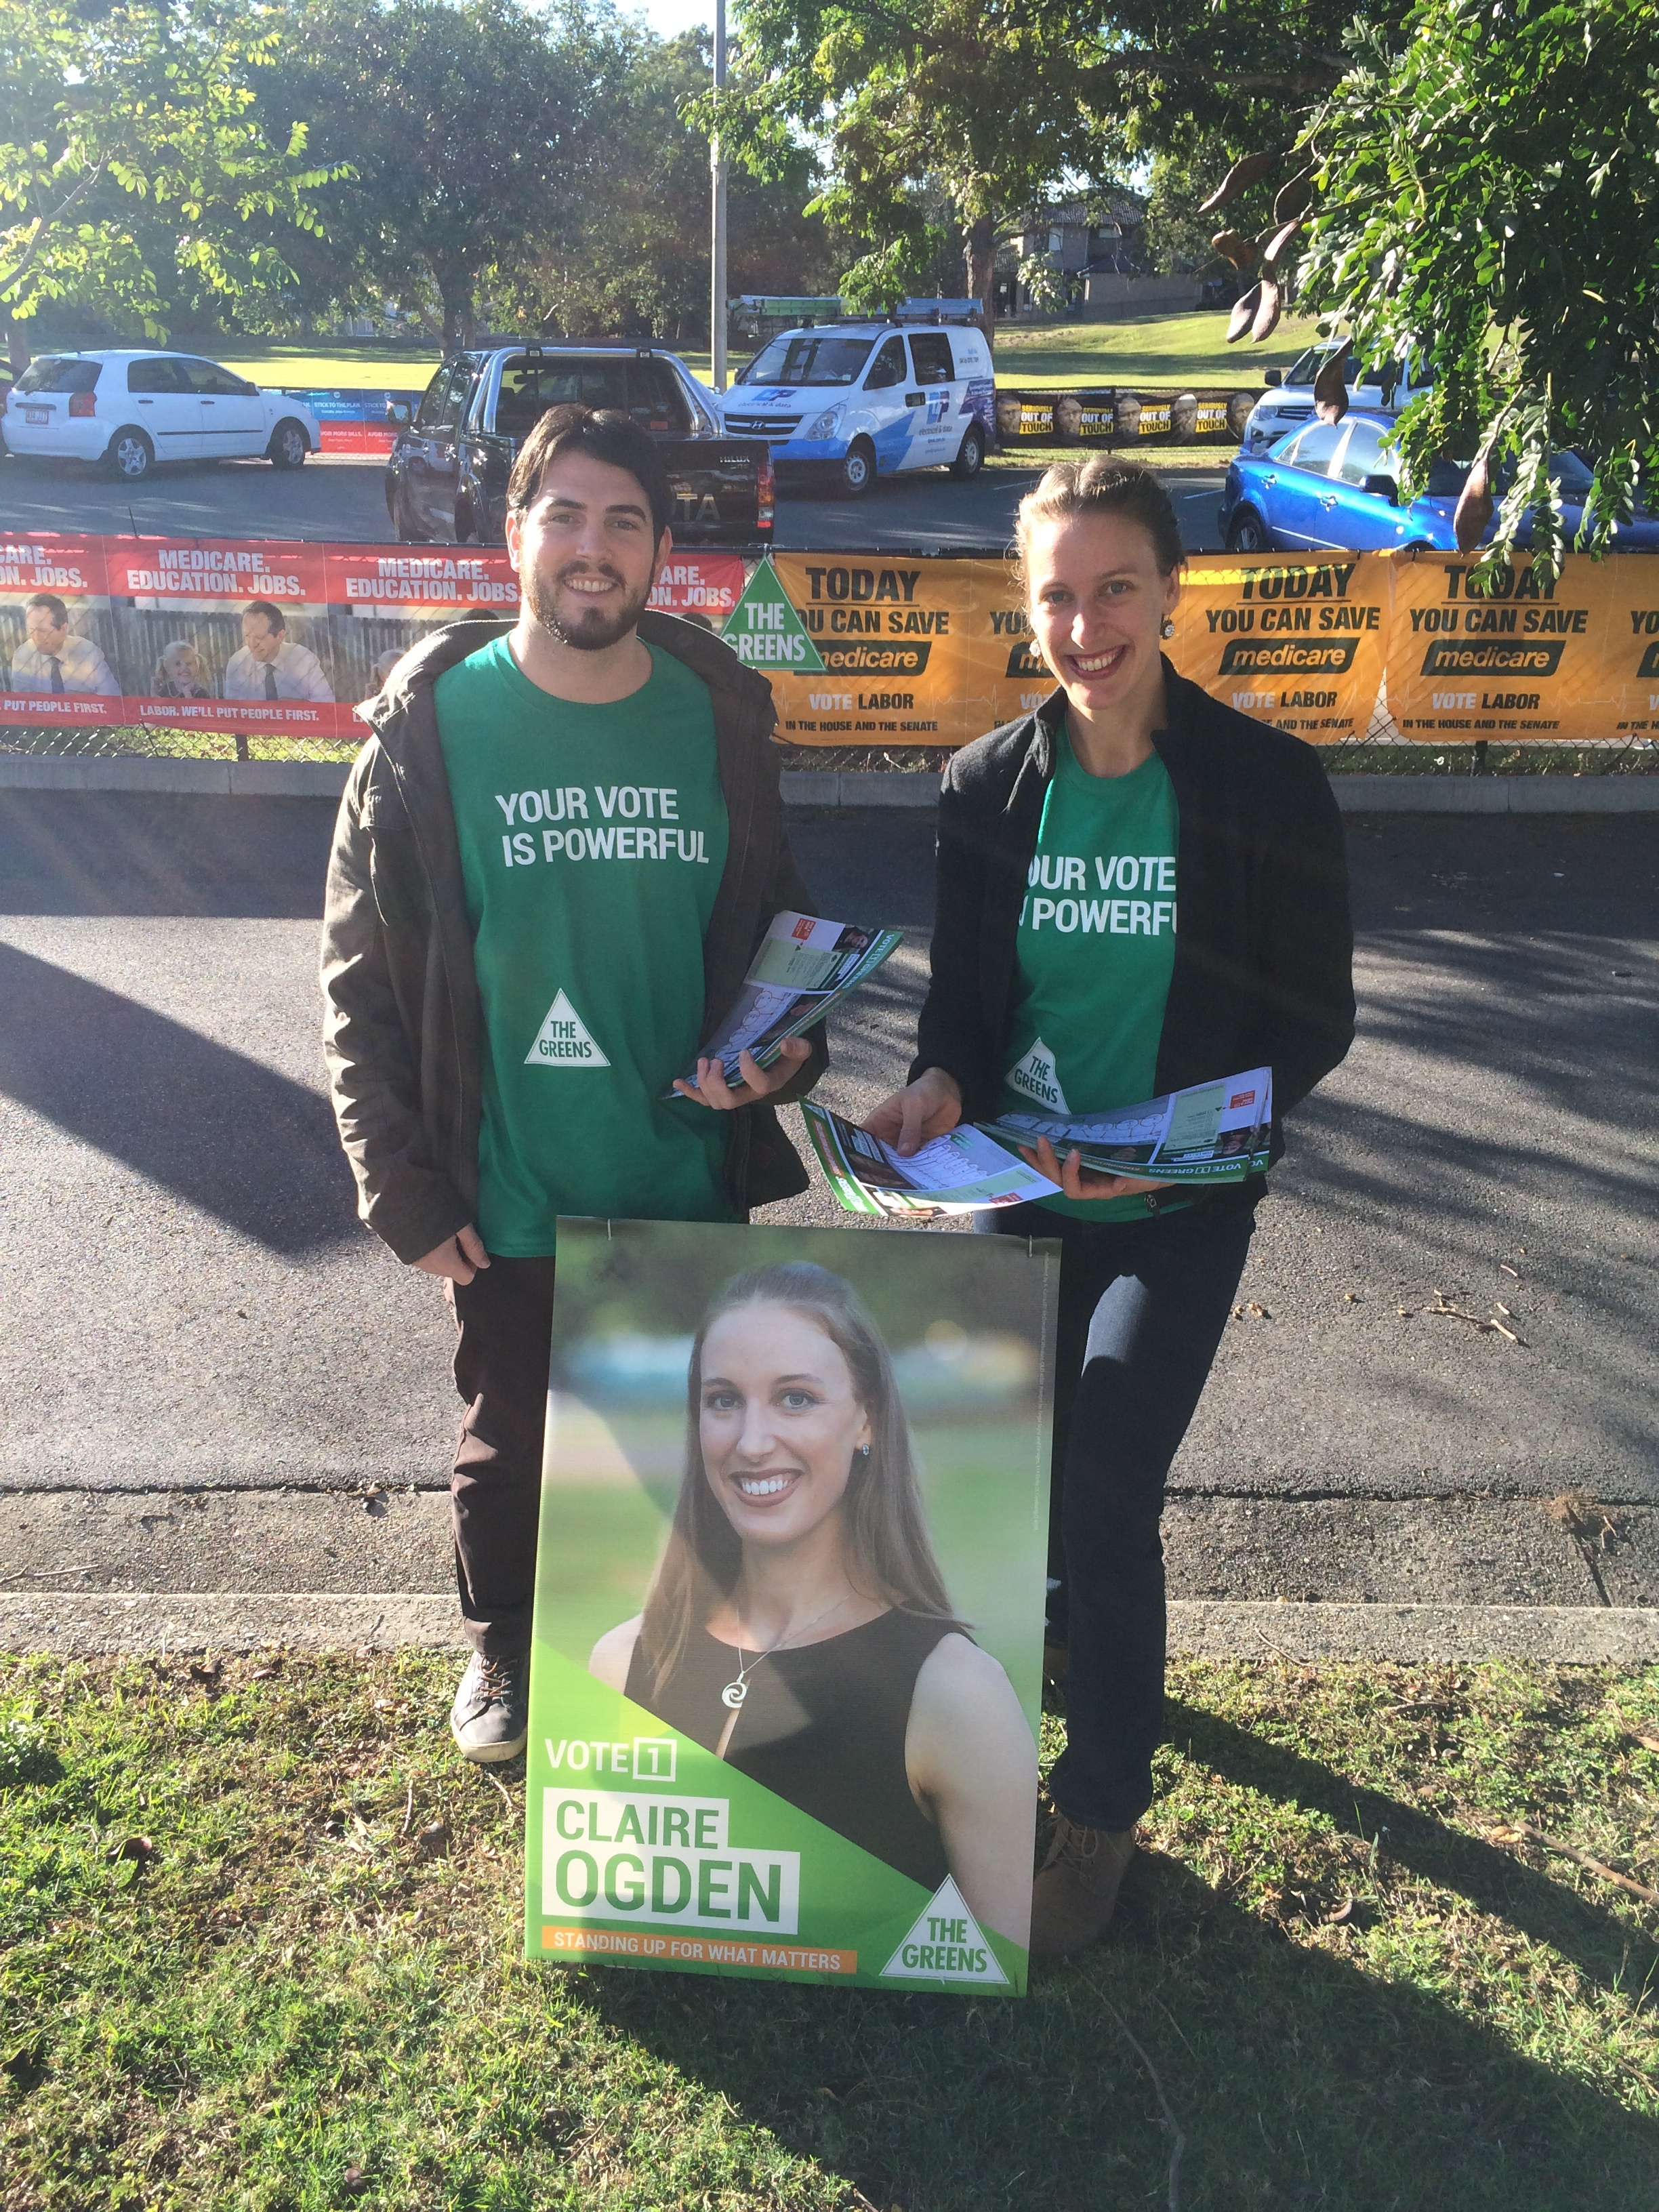 Claire Ogden ran for the federal seat of Lilley in the election last year